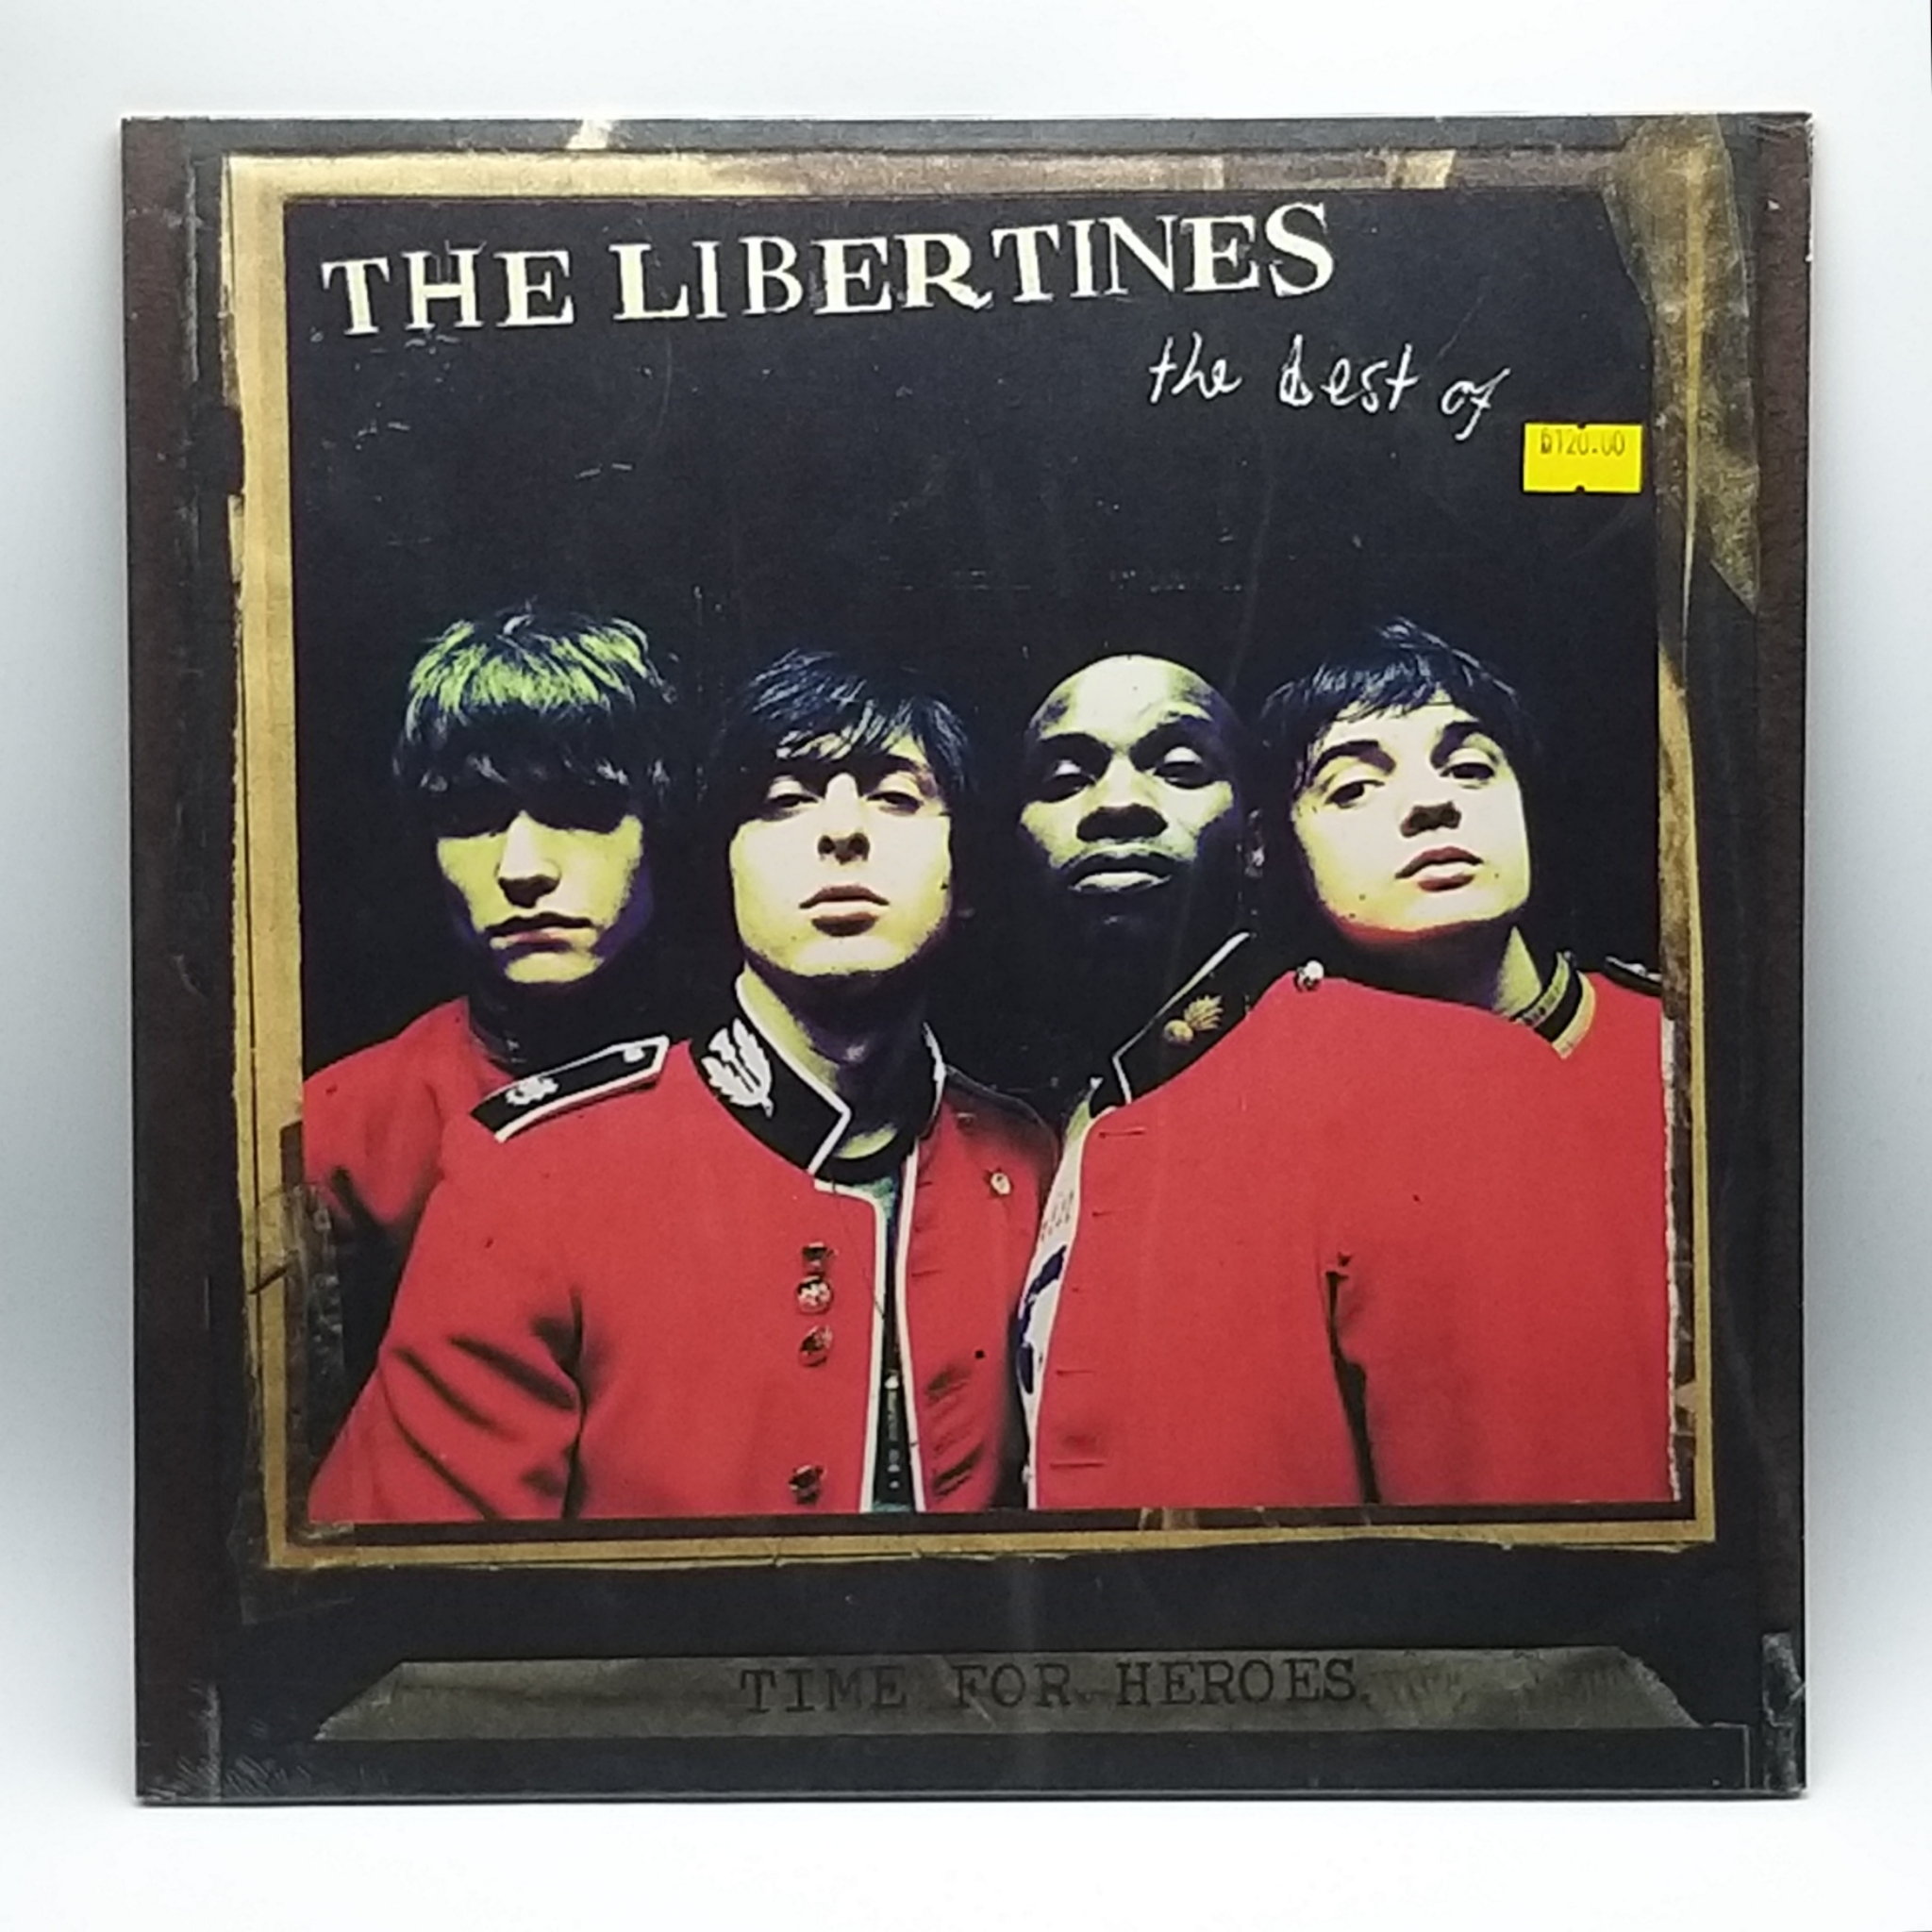 12 CD Record Wall Clock Time For Heroes The Libertines